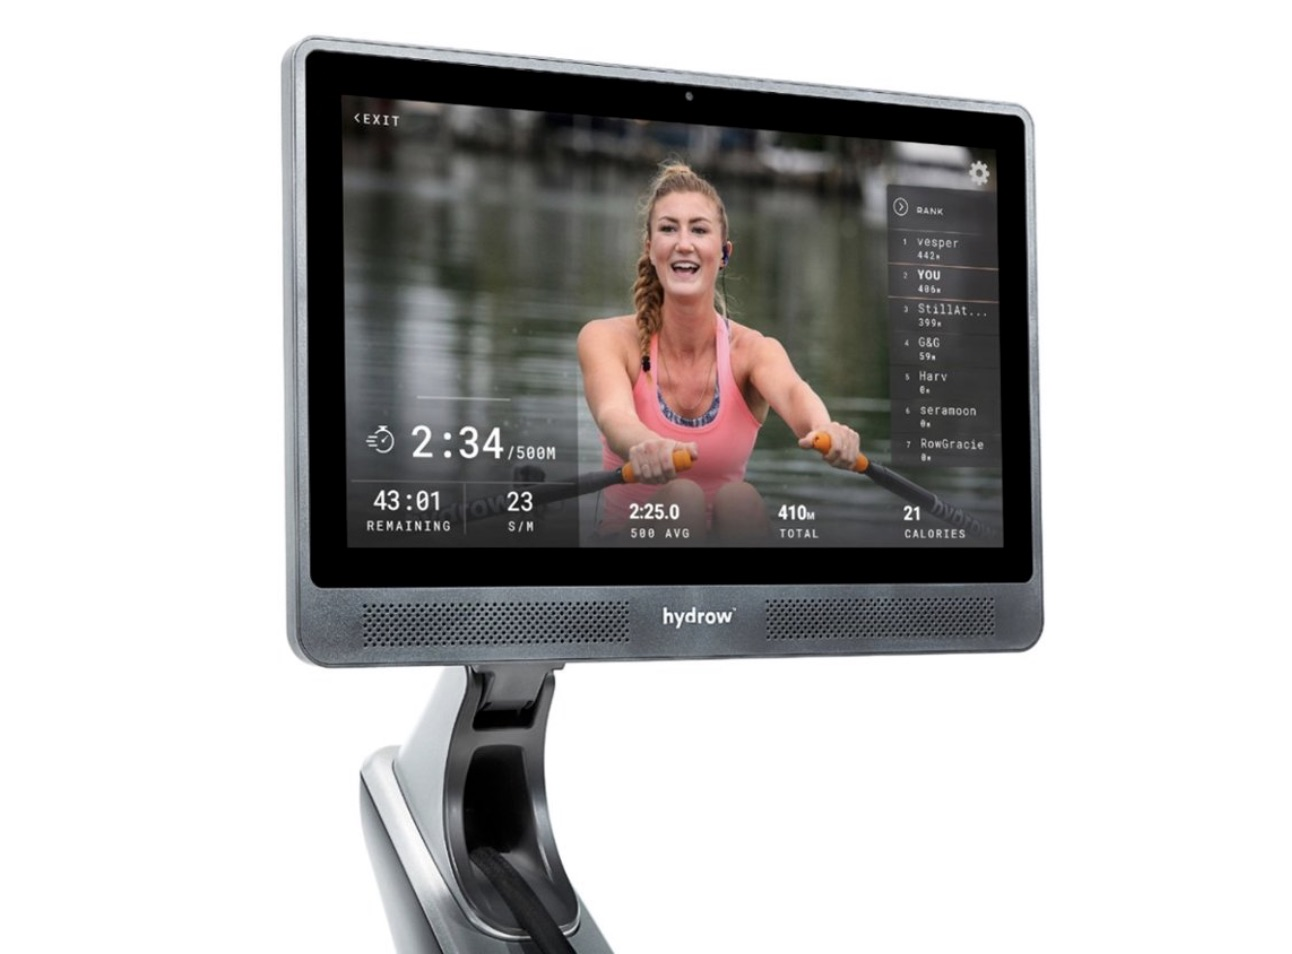 Hydrow Rowing Machine Monitor